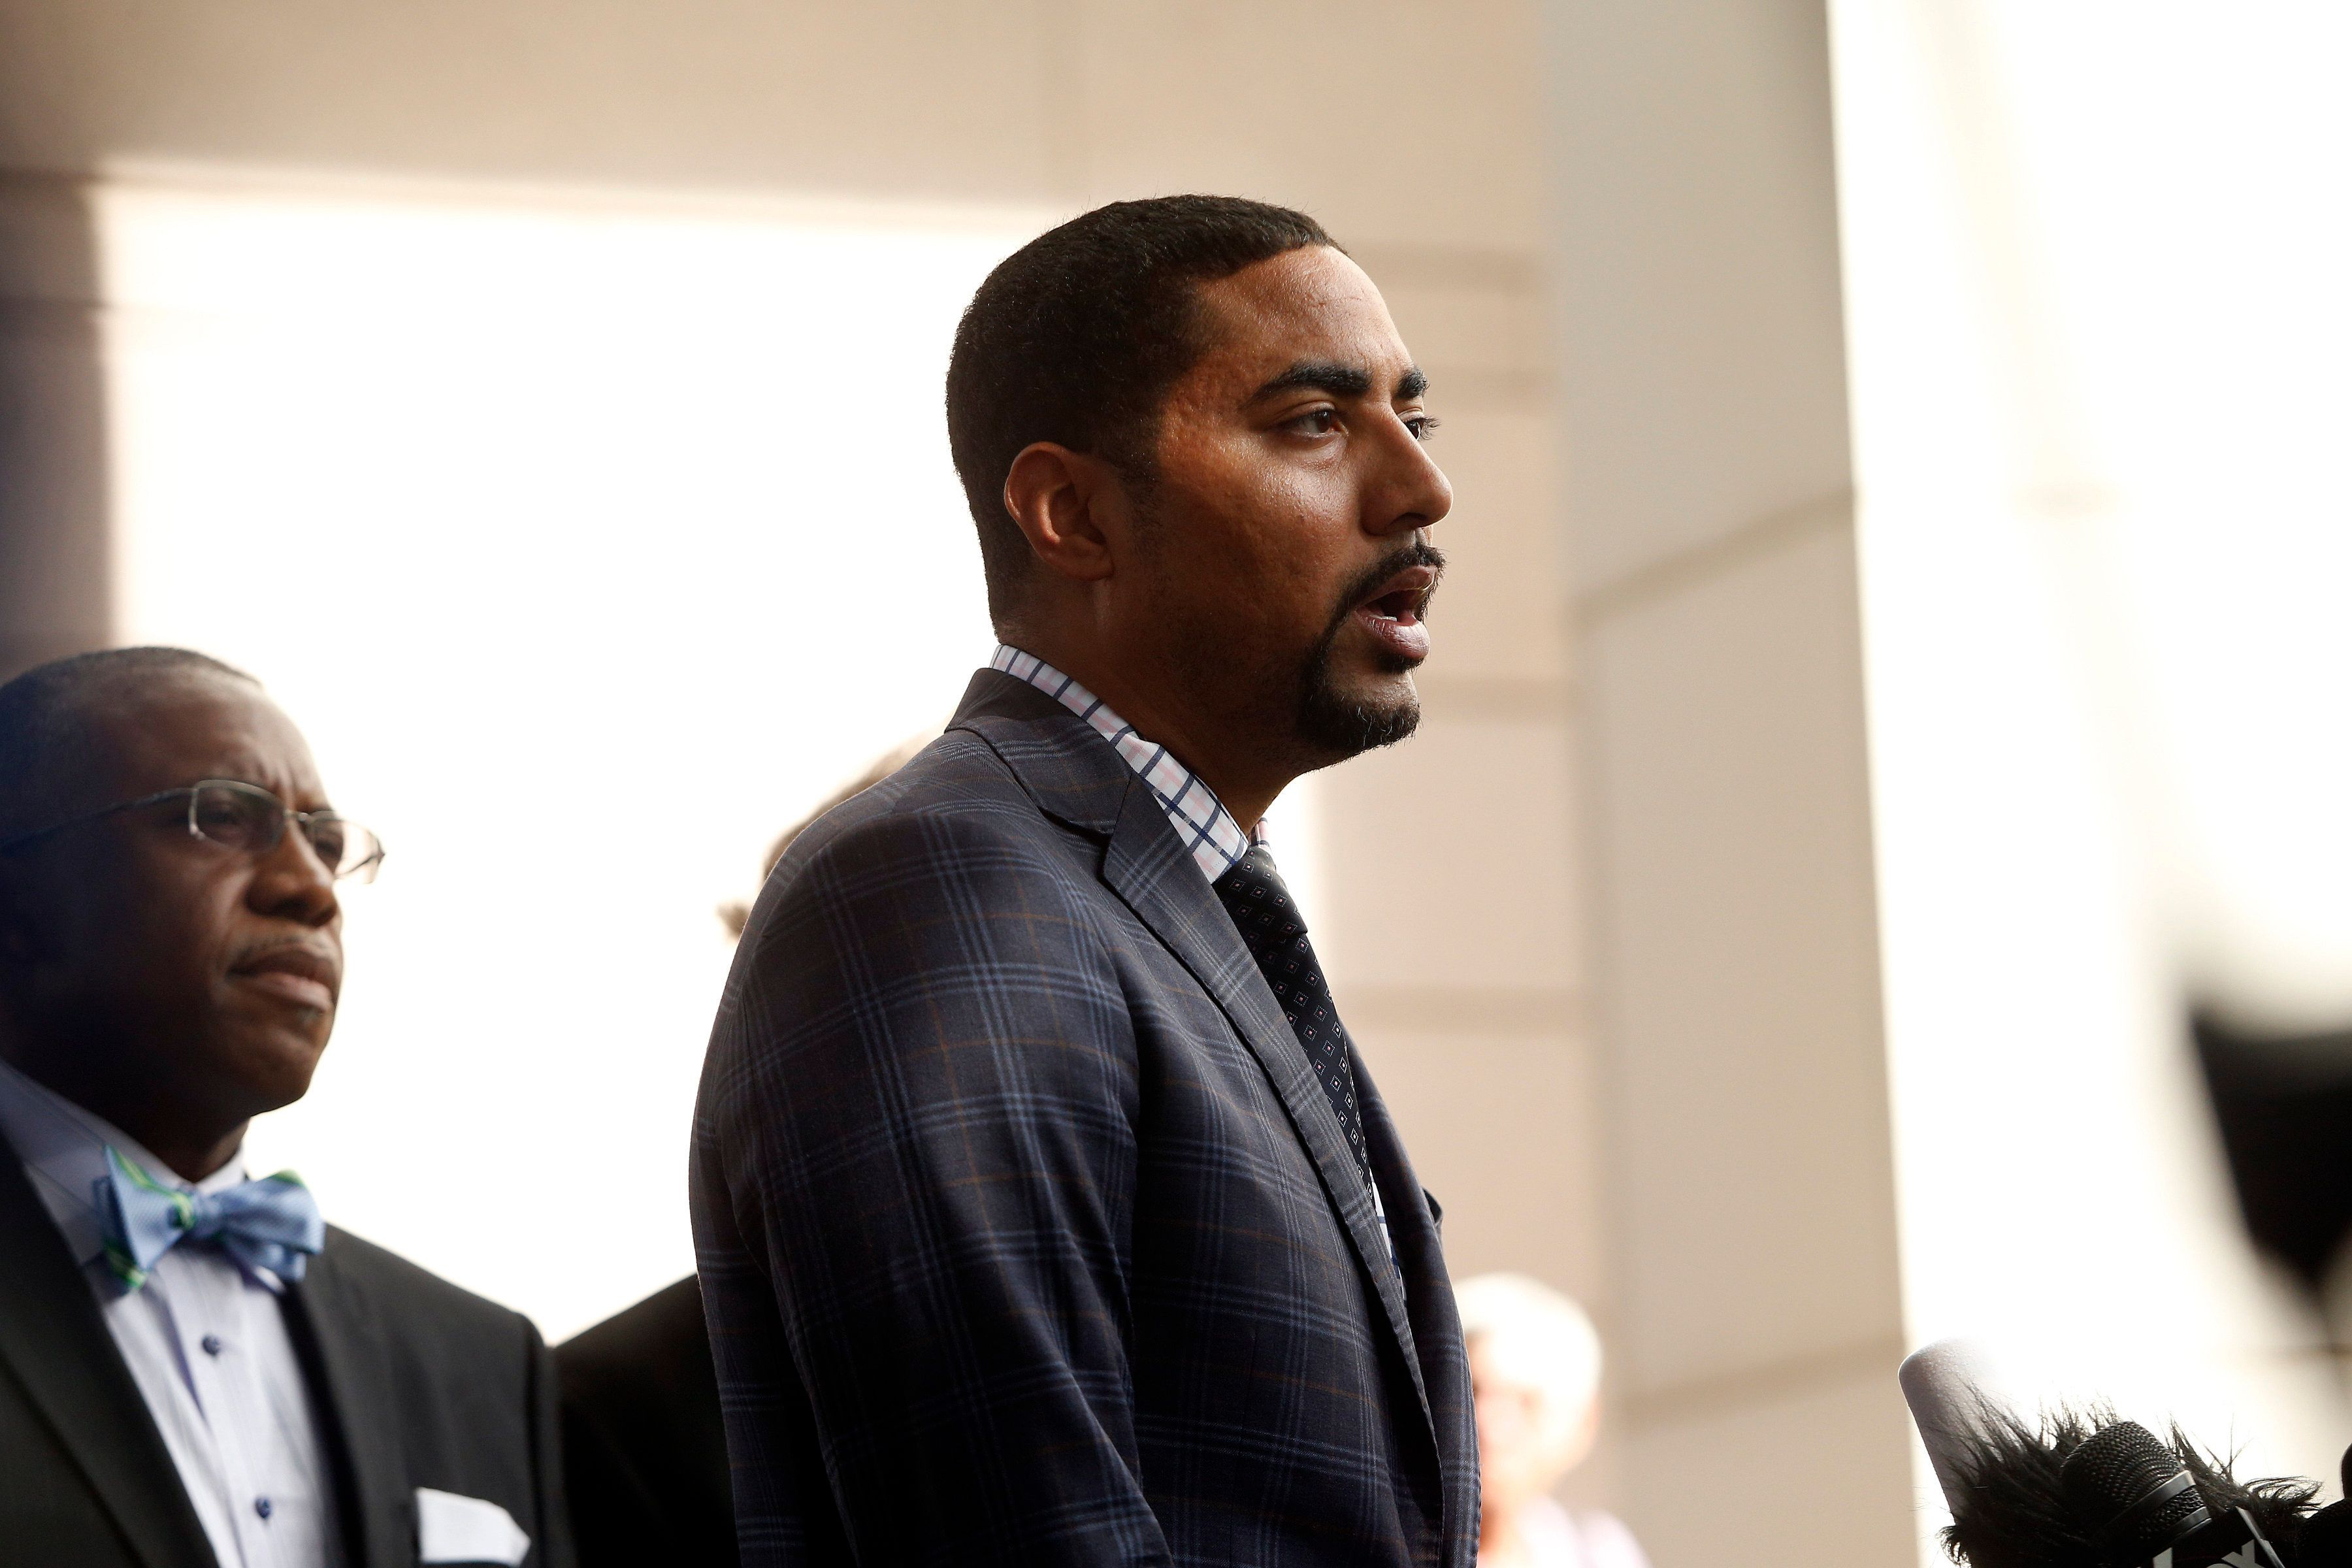 CHARLOTTE, NC - SEPTEMBER 22:  Justin Bamberg, the attorney for the family of Keith Scott, speaks to the media on September 22, 2016 in Charlotte, North Carolina.  Keith Scott, 43,  was shot and killed by police officers at an apartment complex near UNC Charlotte. (Photo by Brian Blanco/Getty Images)